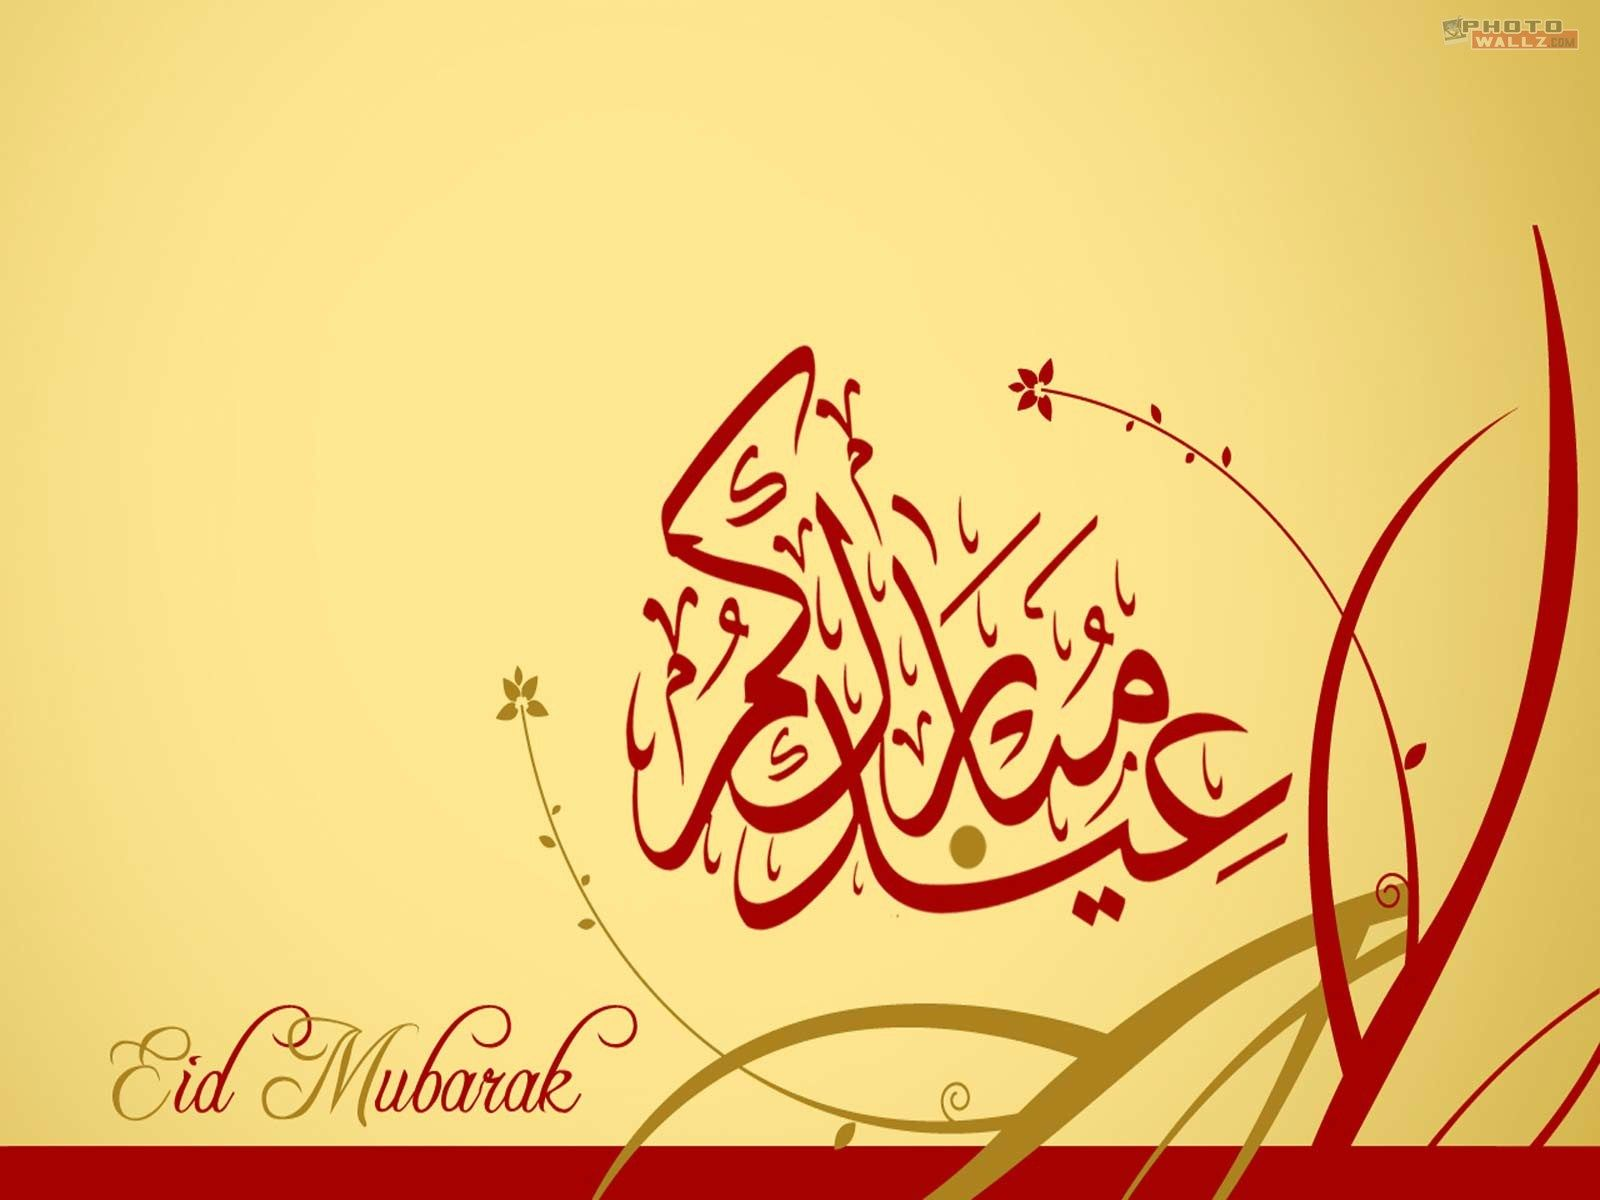 Eid Mubarak Wallpaper In Arabic With Images Eid Mubarak